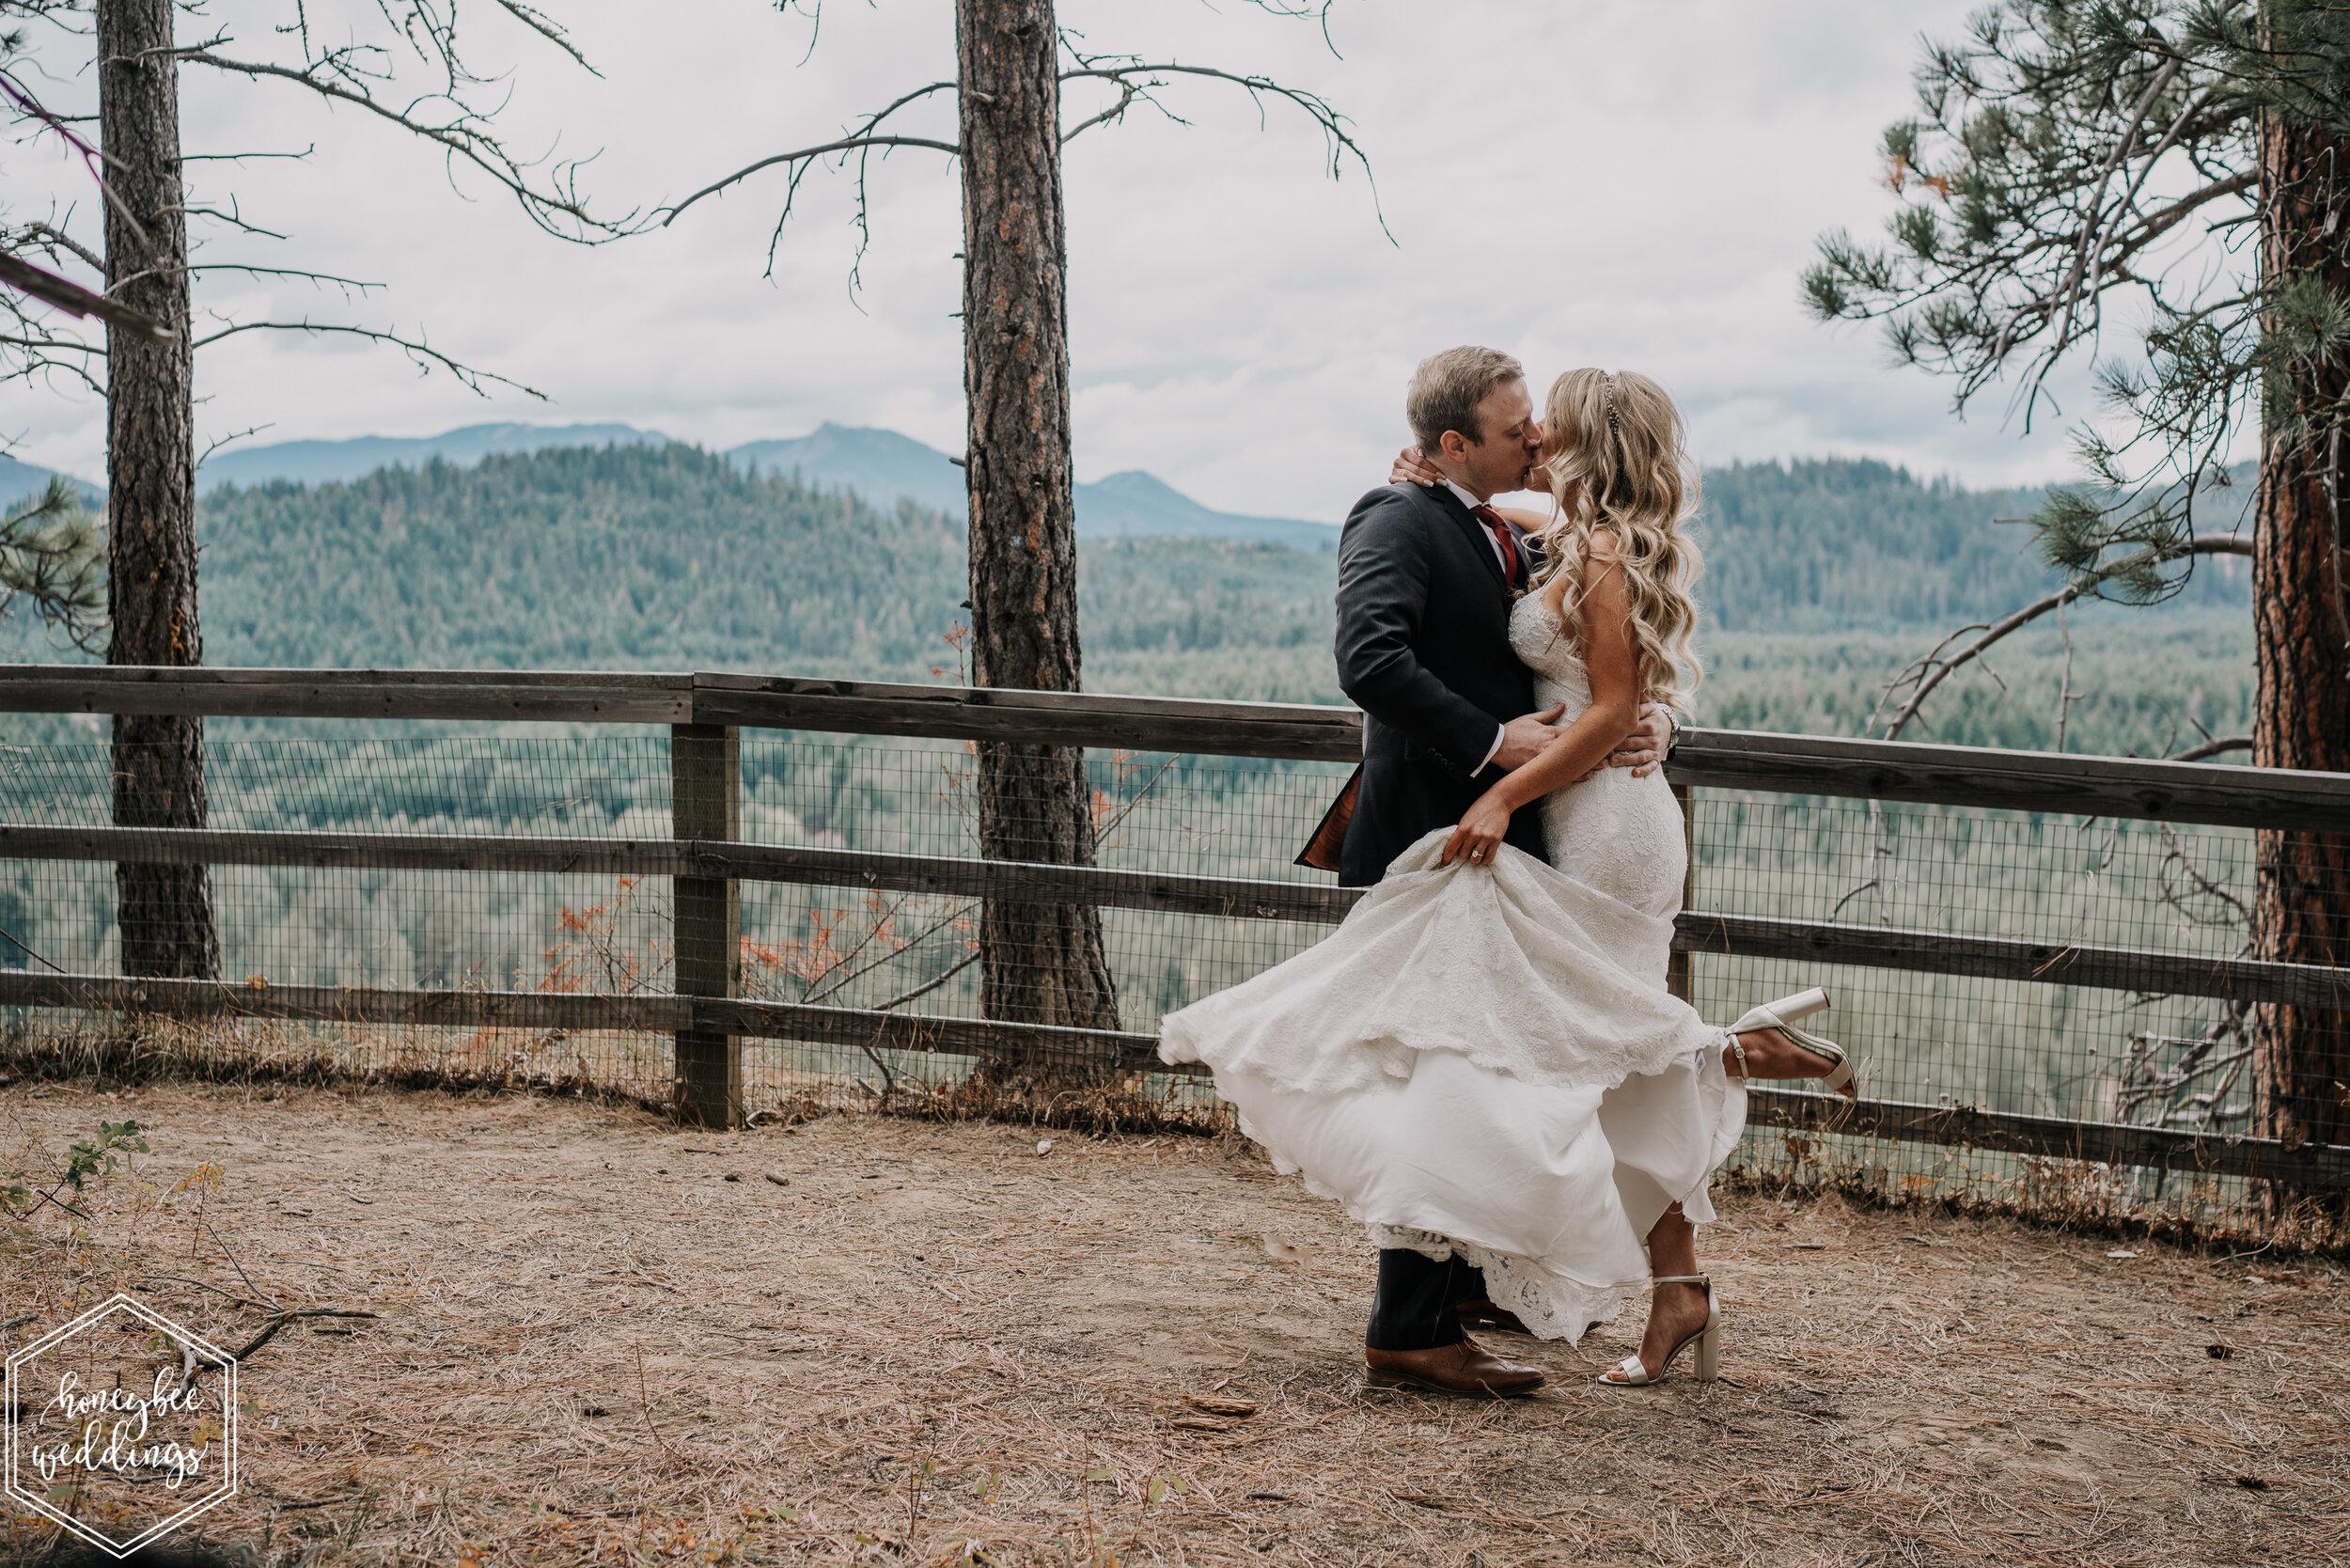 0083Swiftwater Cellars Wedding_Cle Elum Wedding_Montana Wedding Photographer_Kat & Kyle_September 15, 2018-709.jpg